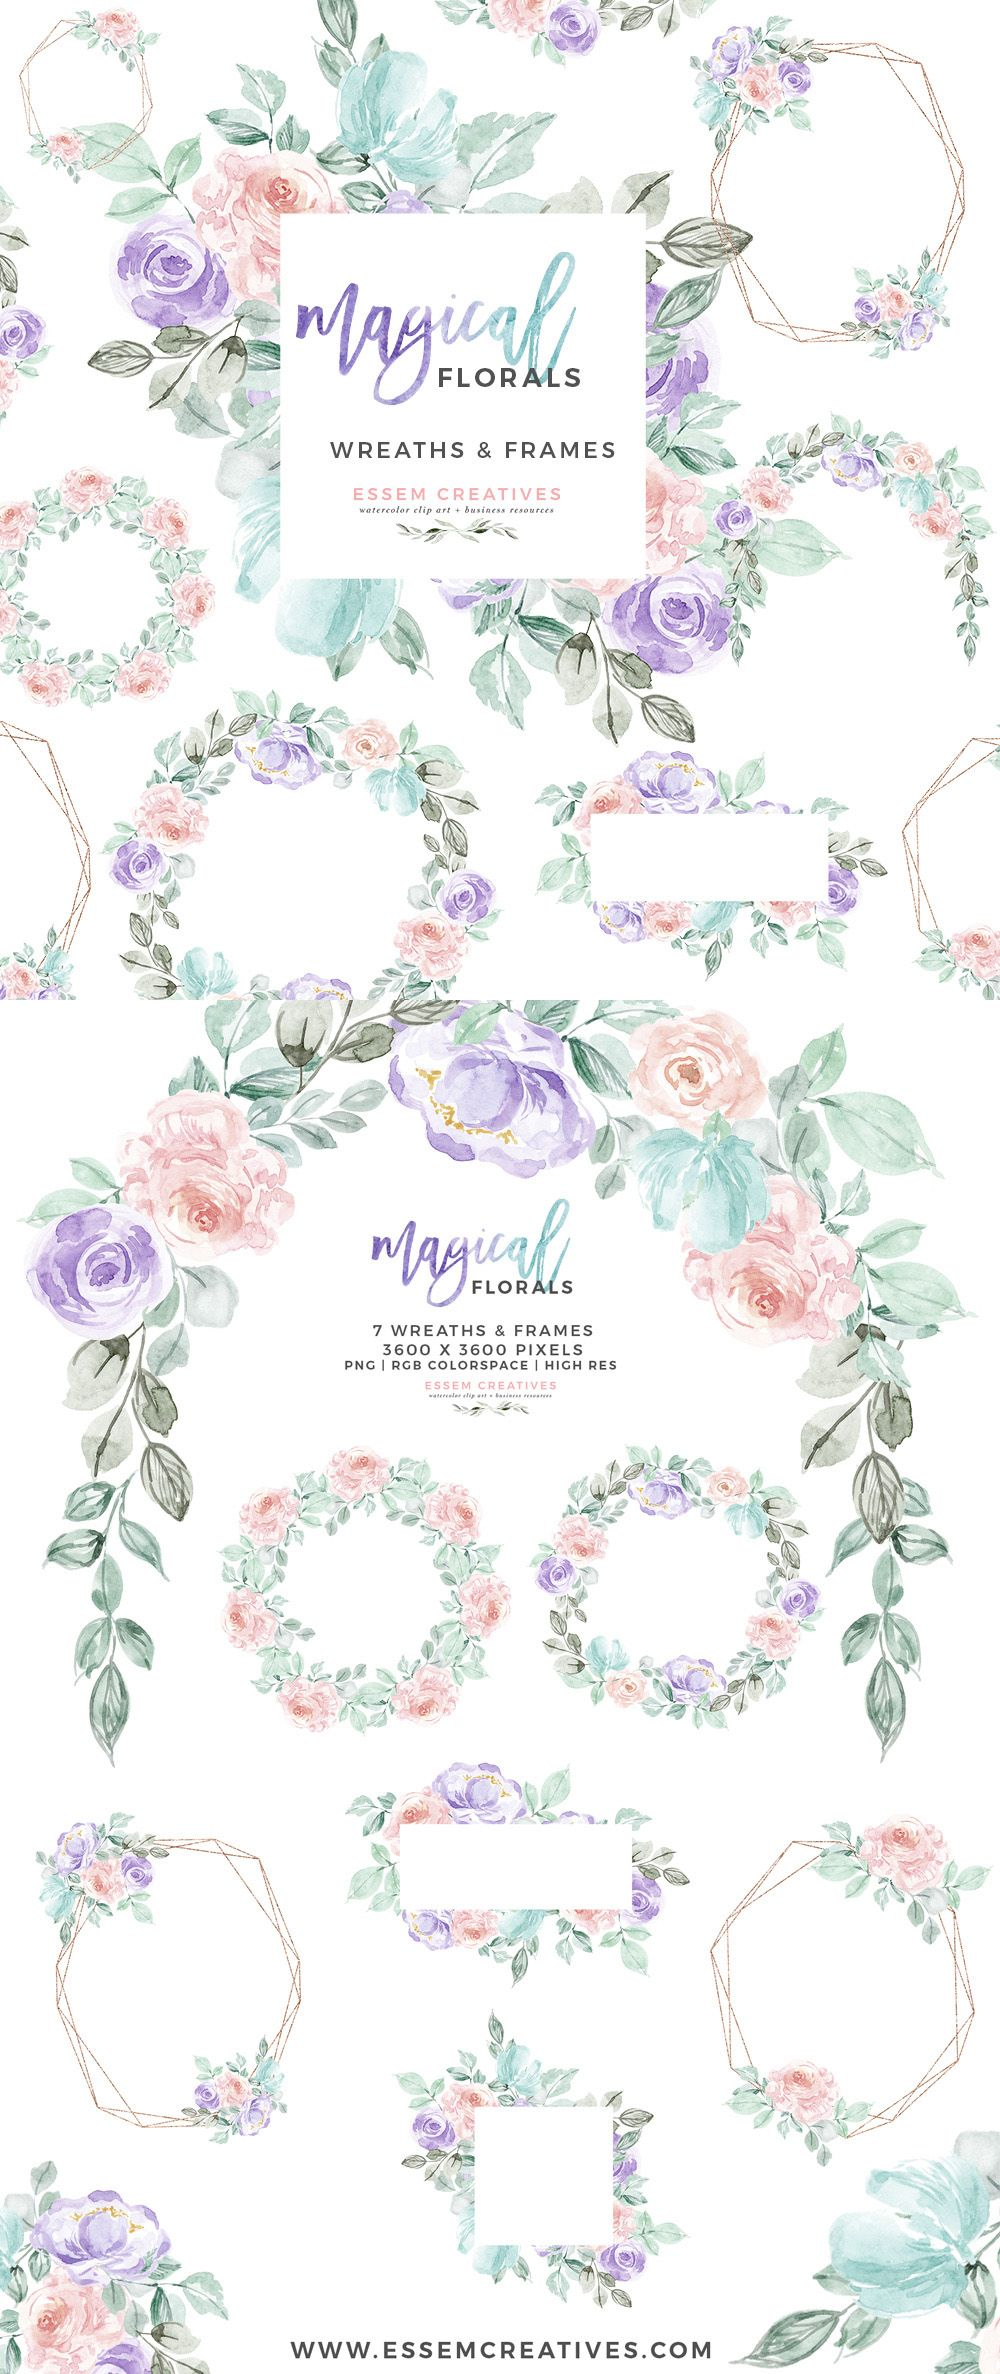 Watercolor Winter Floral Wreath Frames Clipart Unicorn Rainbow